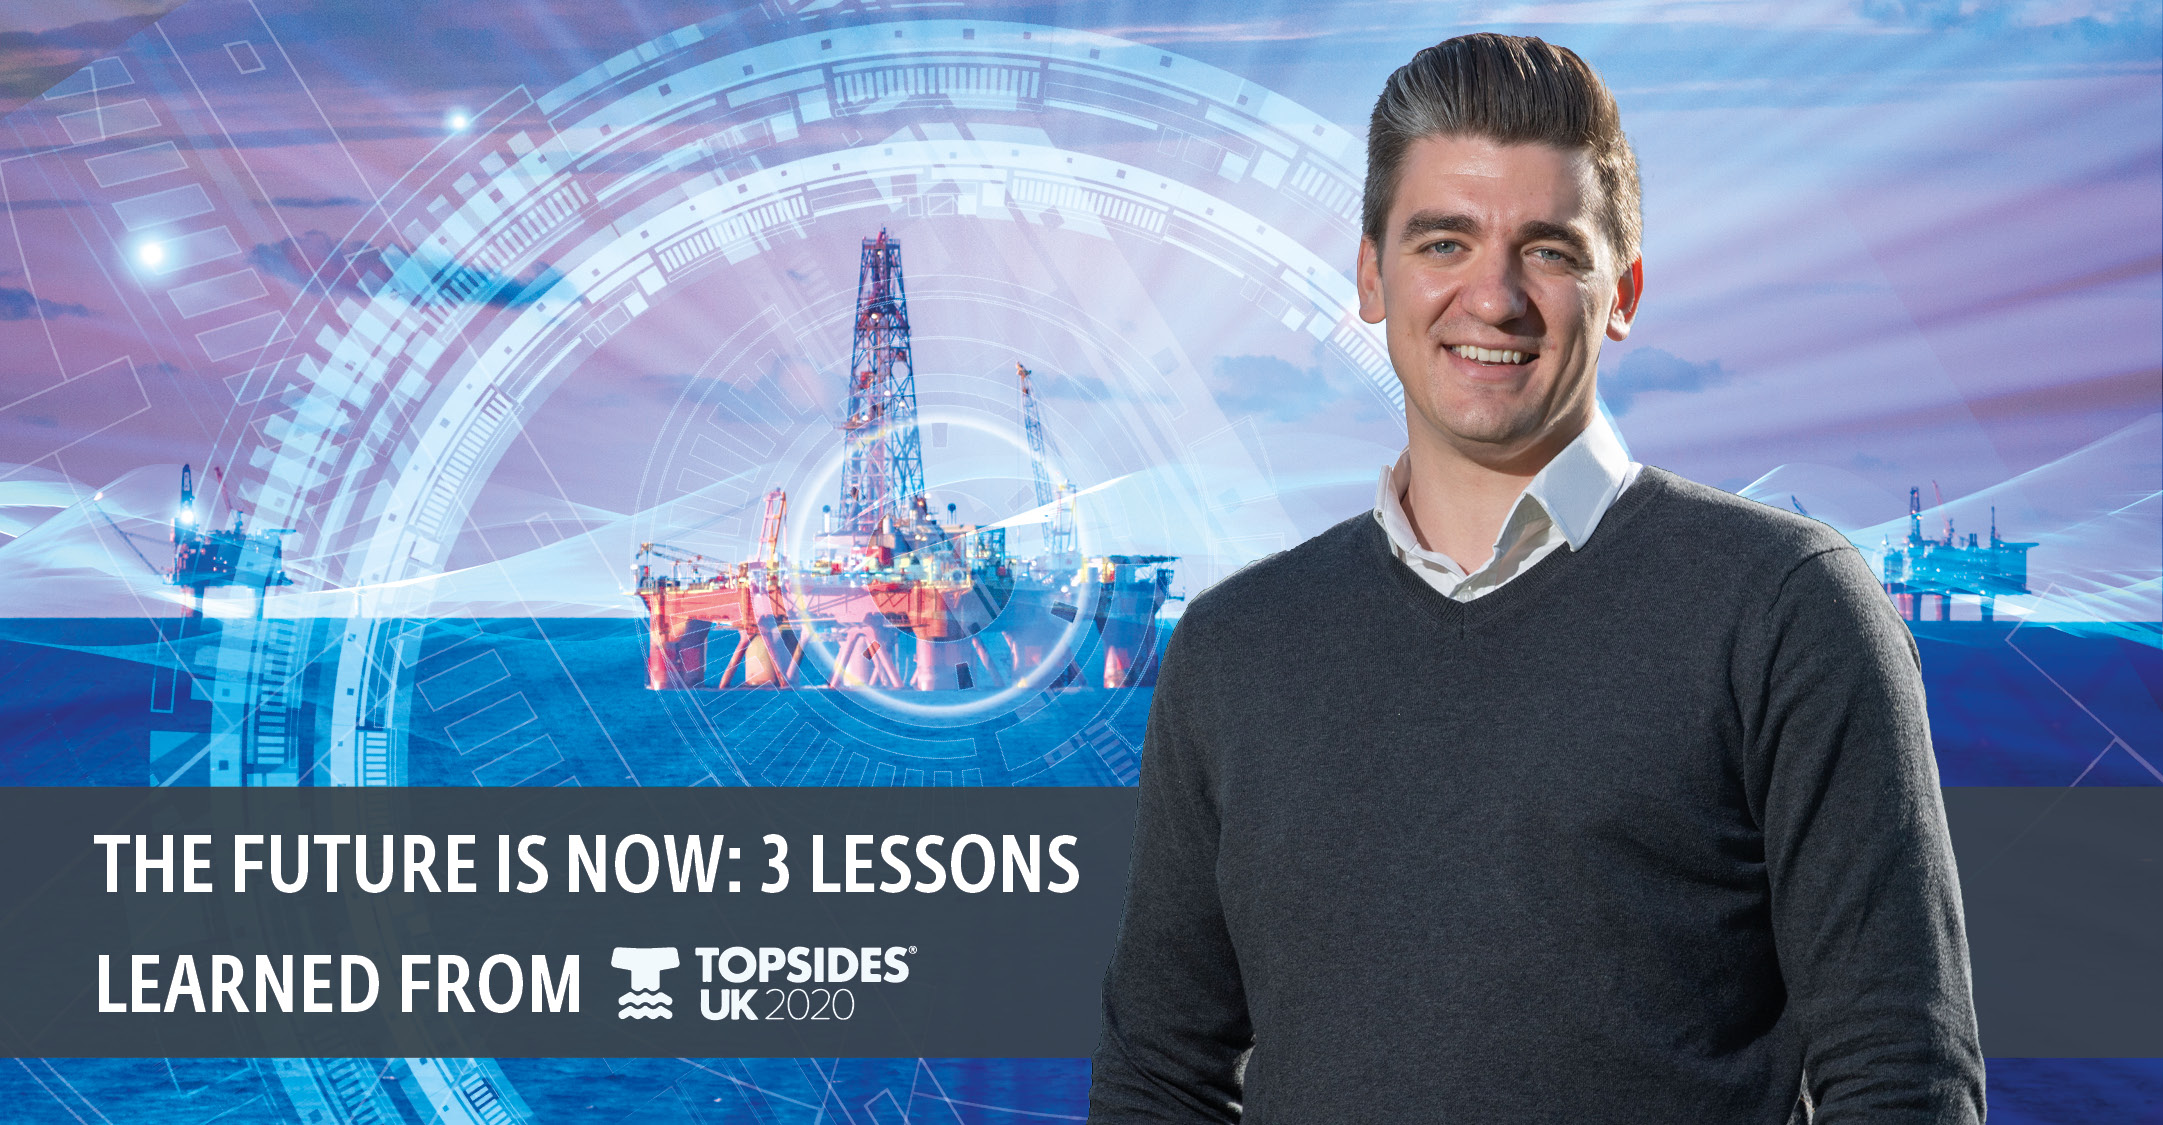 The future is now: 3 lessons learned from Topsides UK 2020